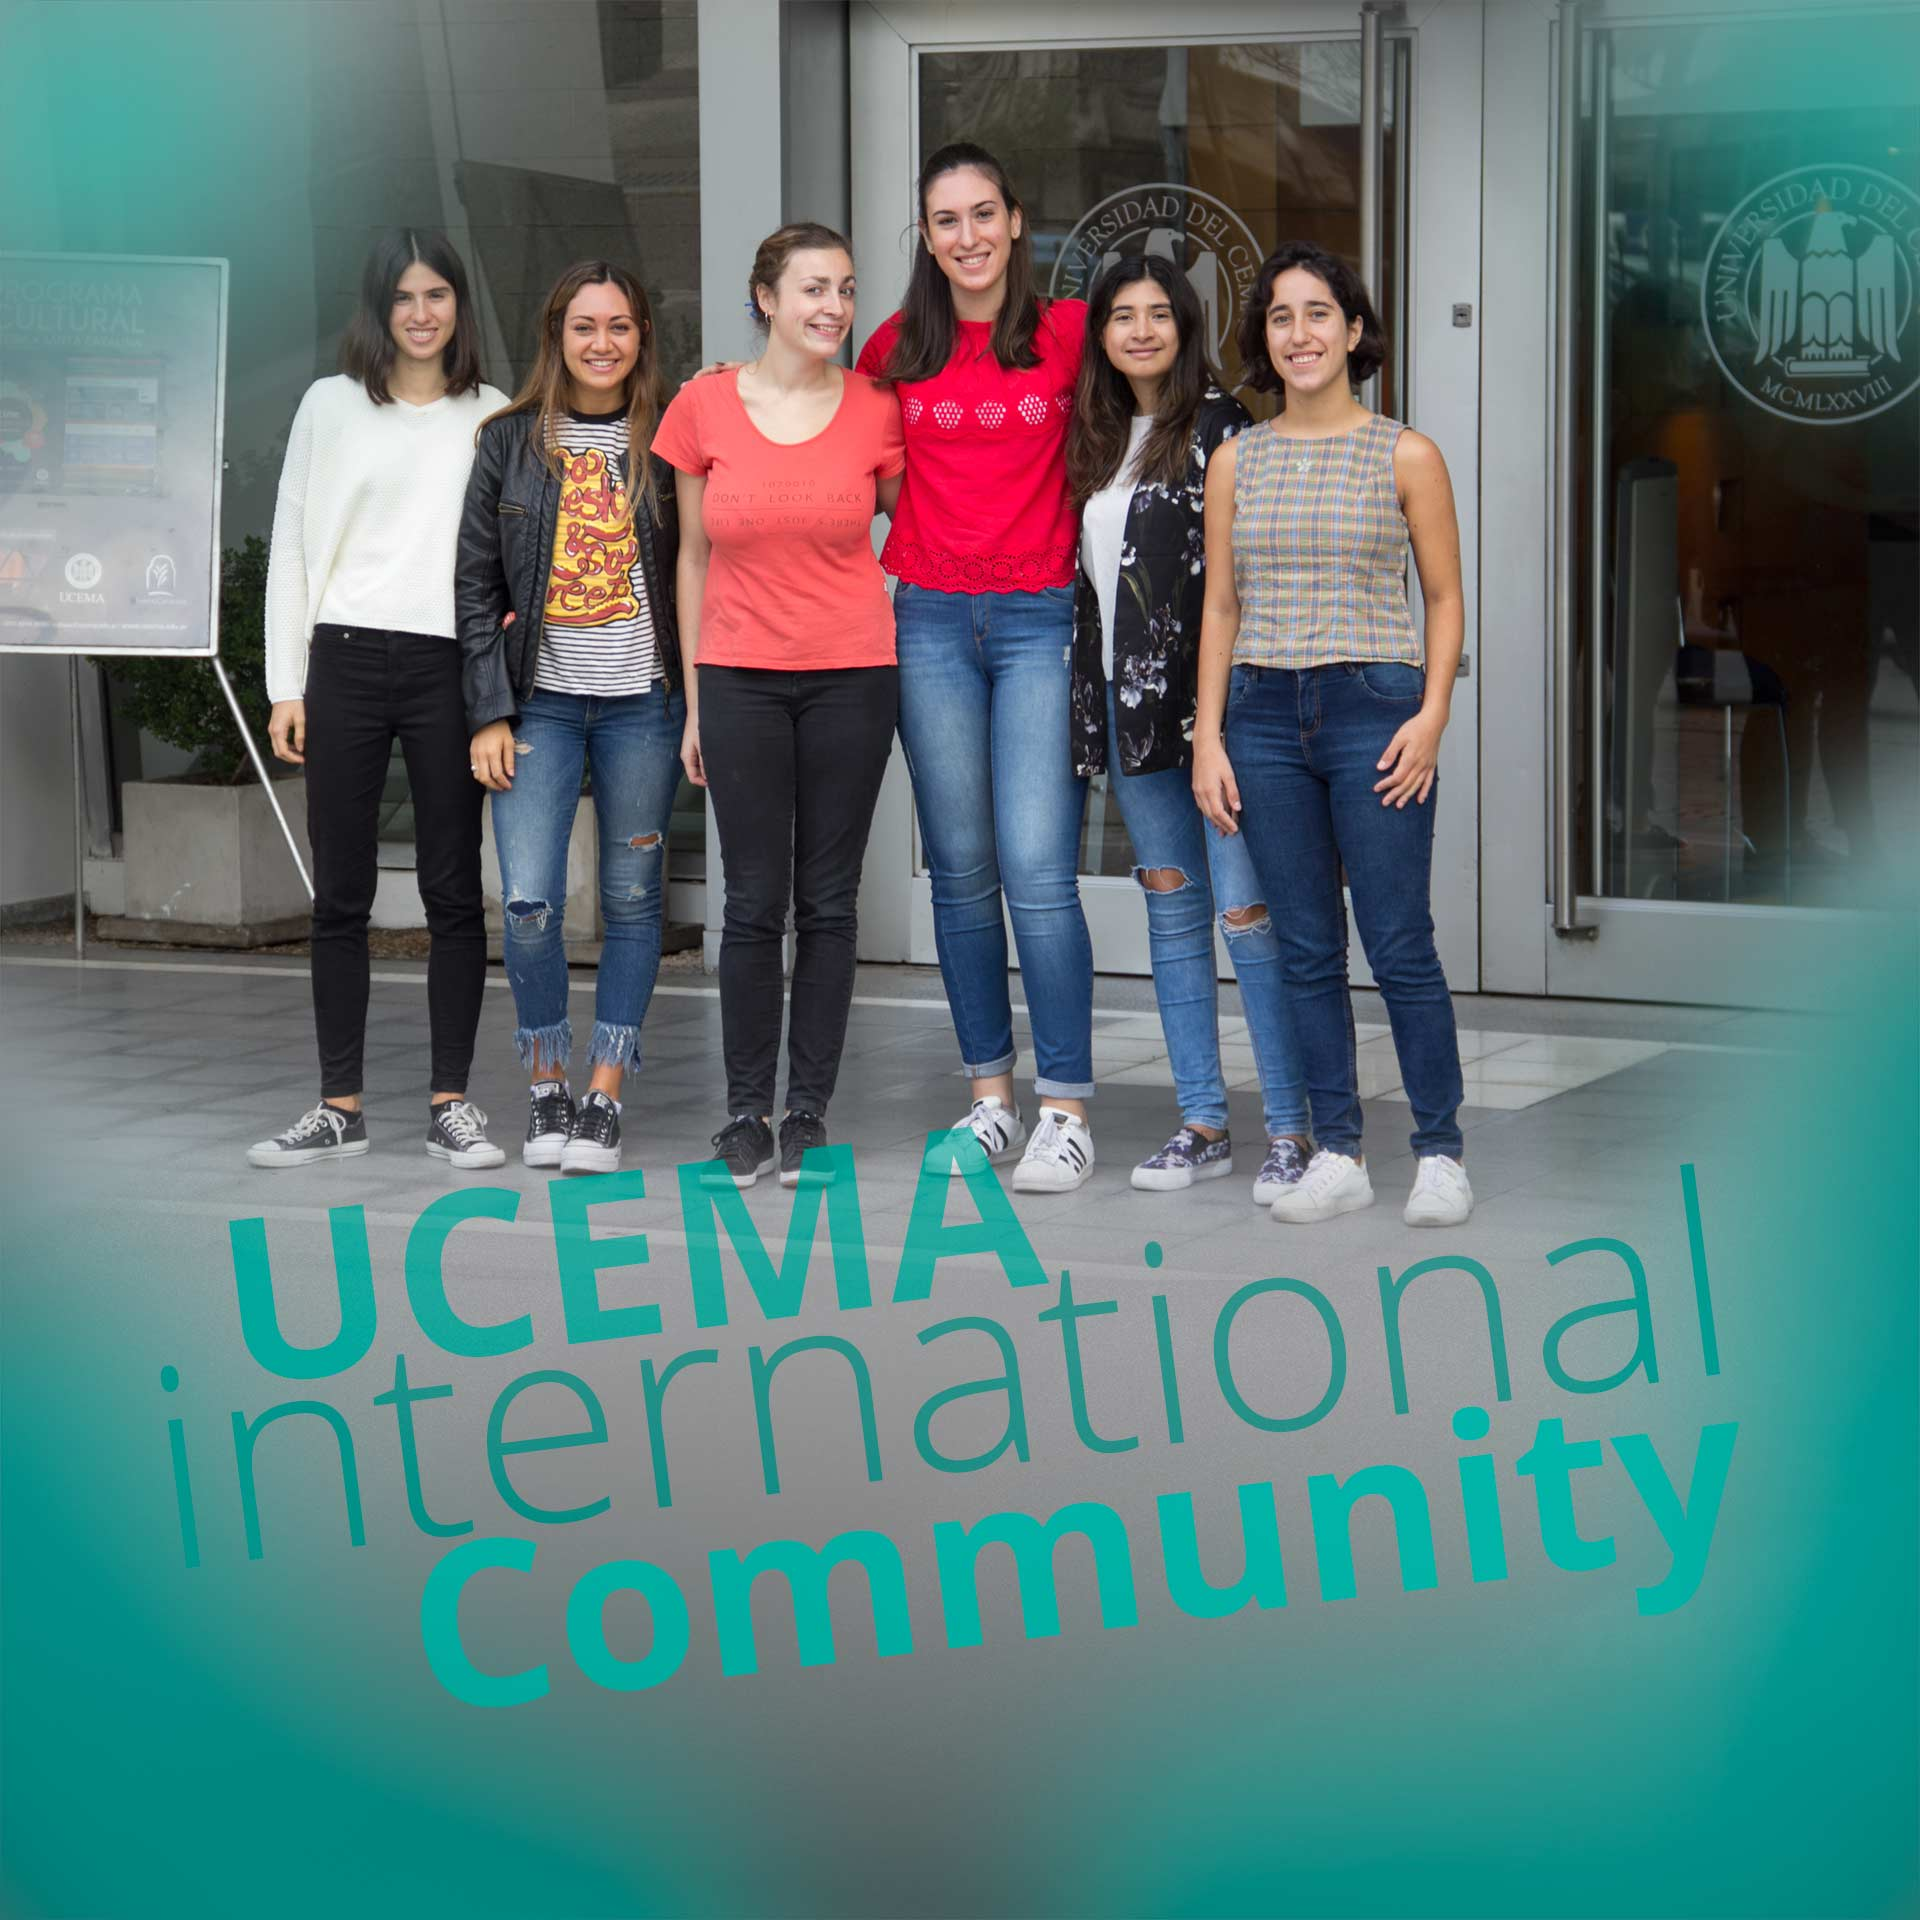 UCEMA International Community